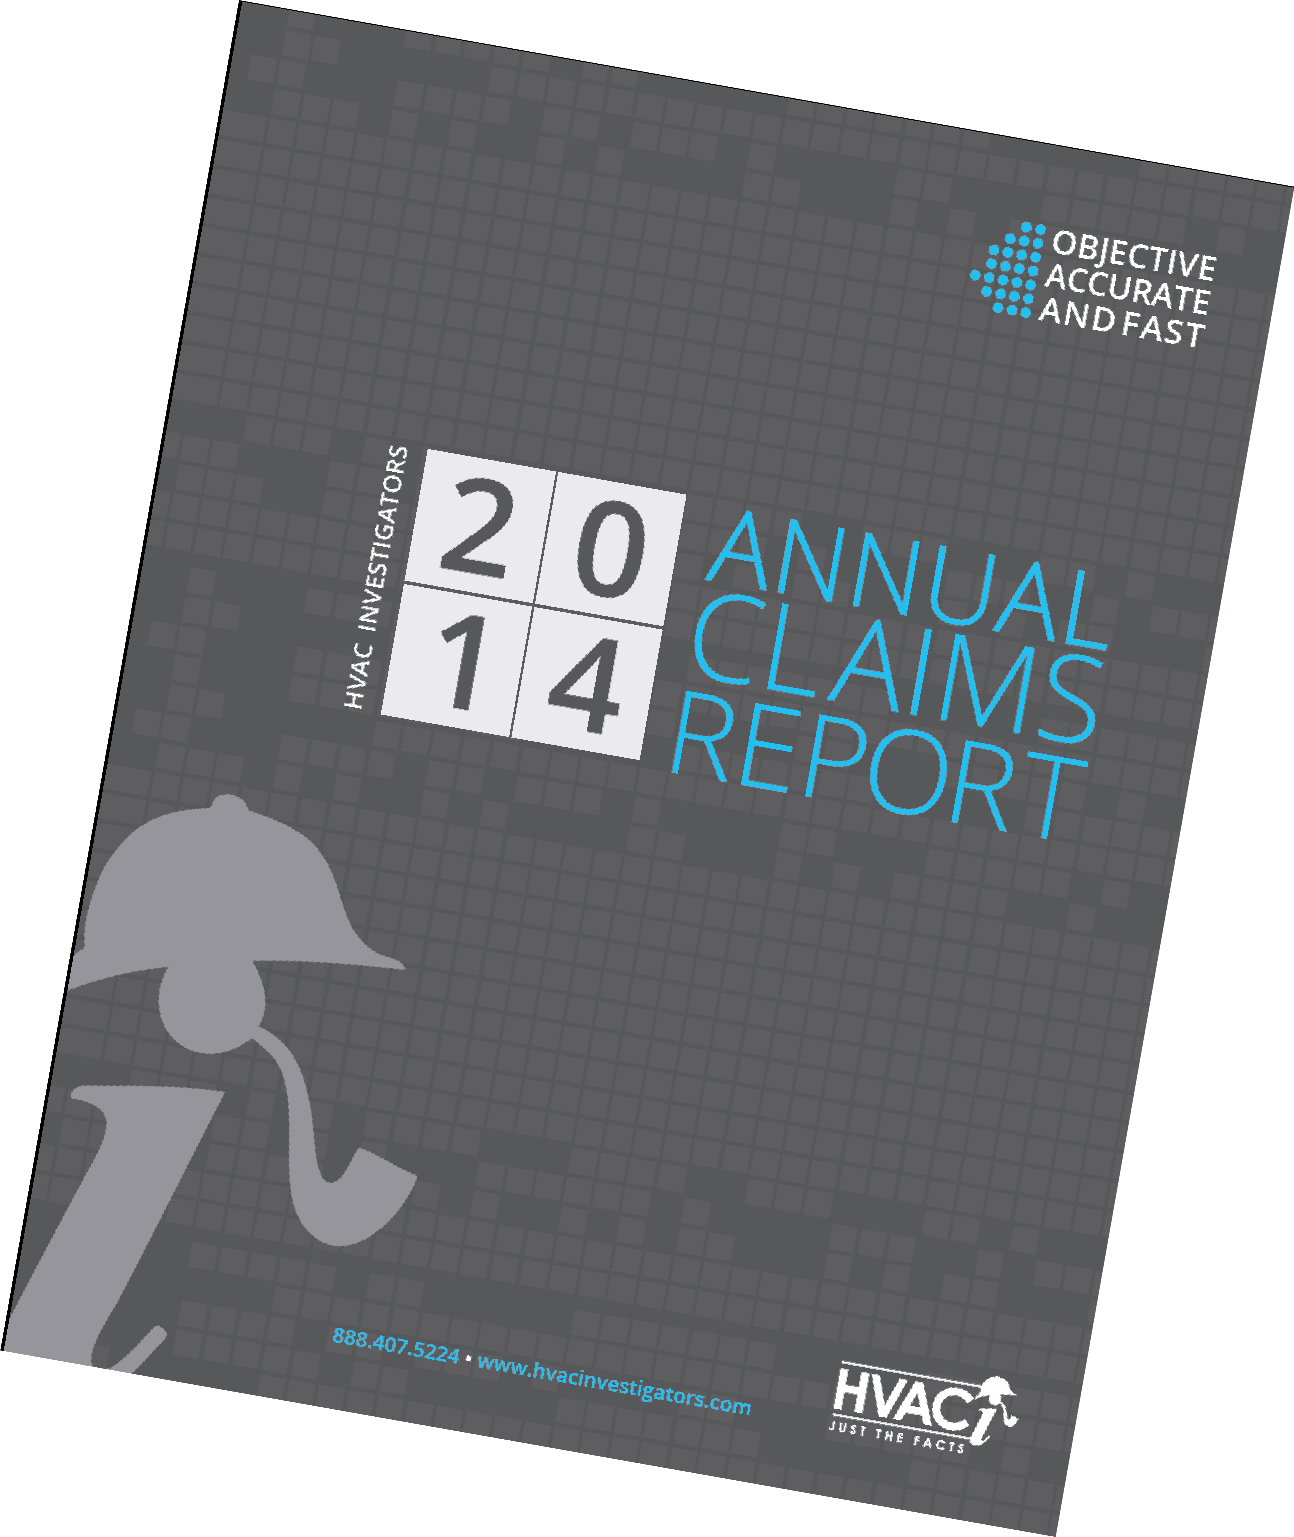 2014 annual claims report